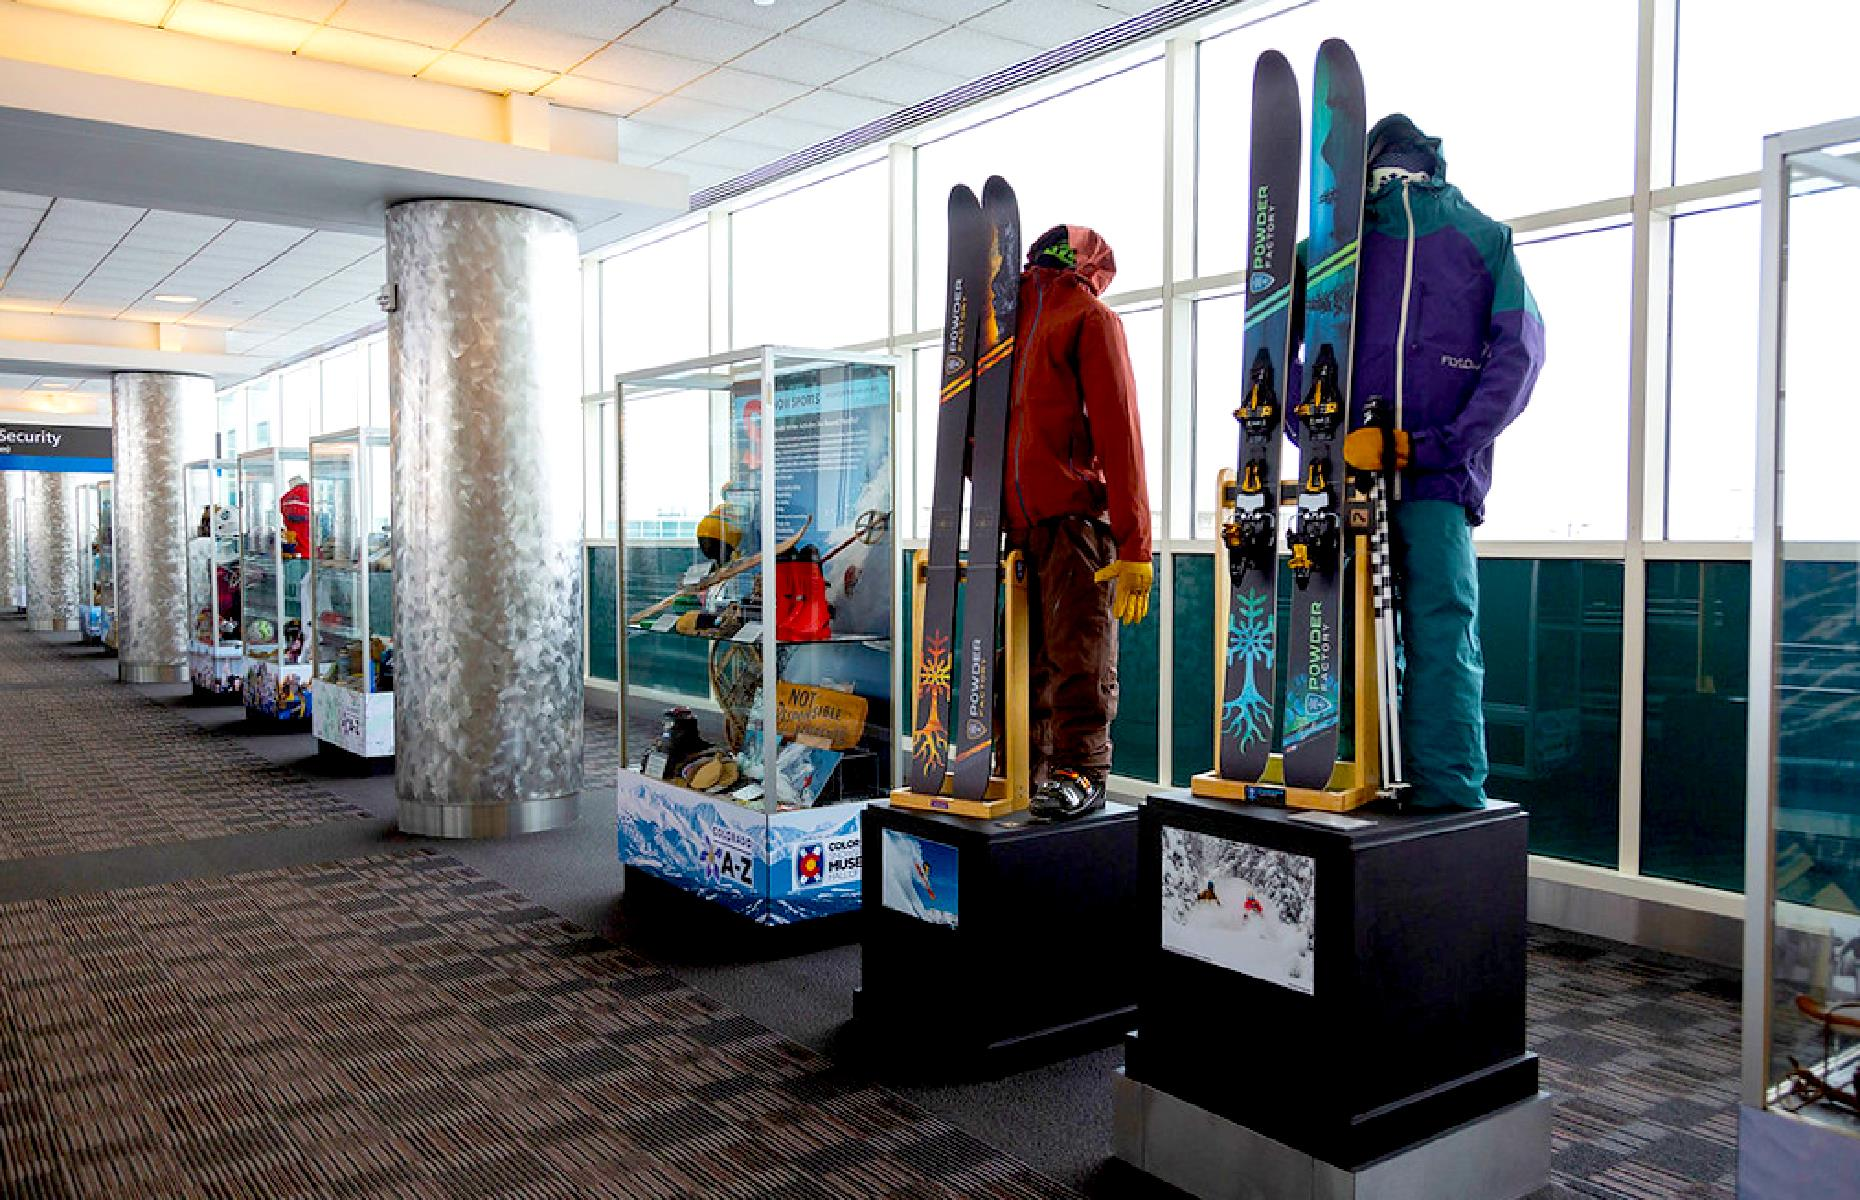 "Slide 7 of 51: The sports of skiing and snowboarding are celebrated at this treasure-packed museum in Vail, one of Colorado's key ski resort towns. You'll find plenty of gear, clothing, medals and trophies that tell the story of the sports throughout time and also the Hall of Fame, which pays homage to sporting greats and ""industry icons"". Admission is free, though a donation is appreciated."